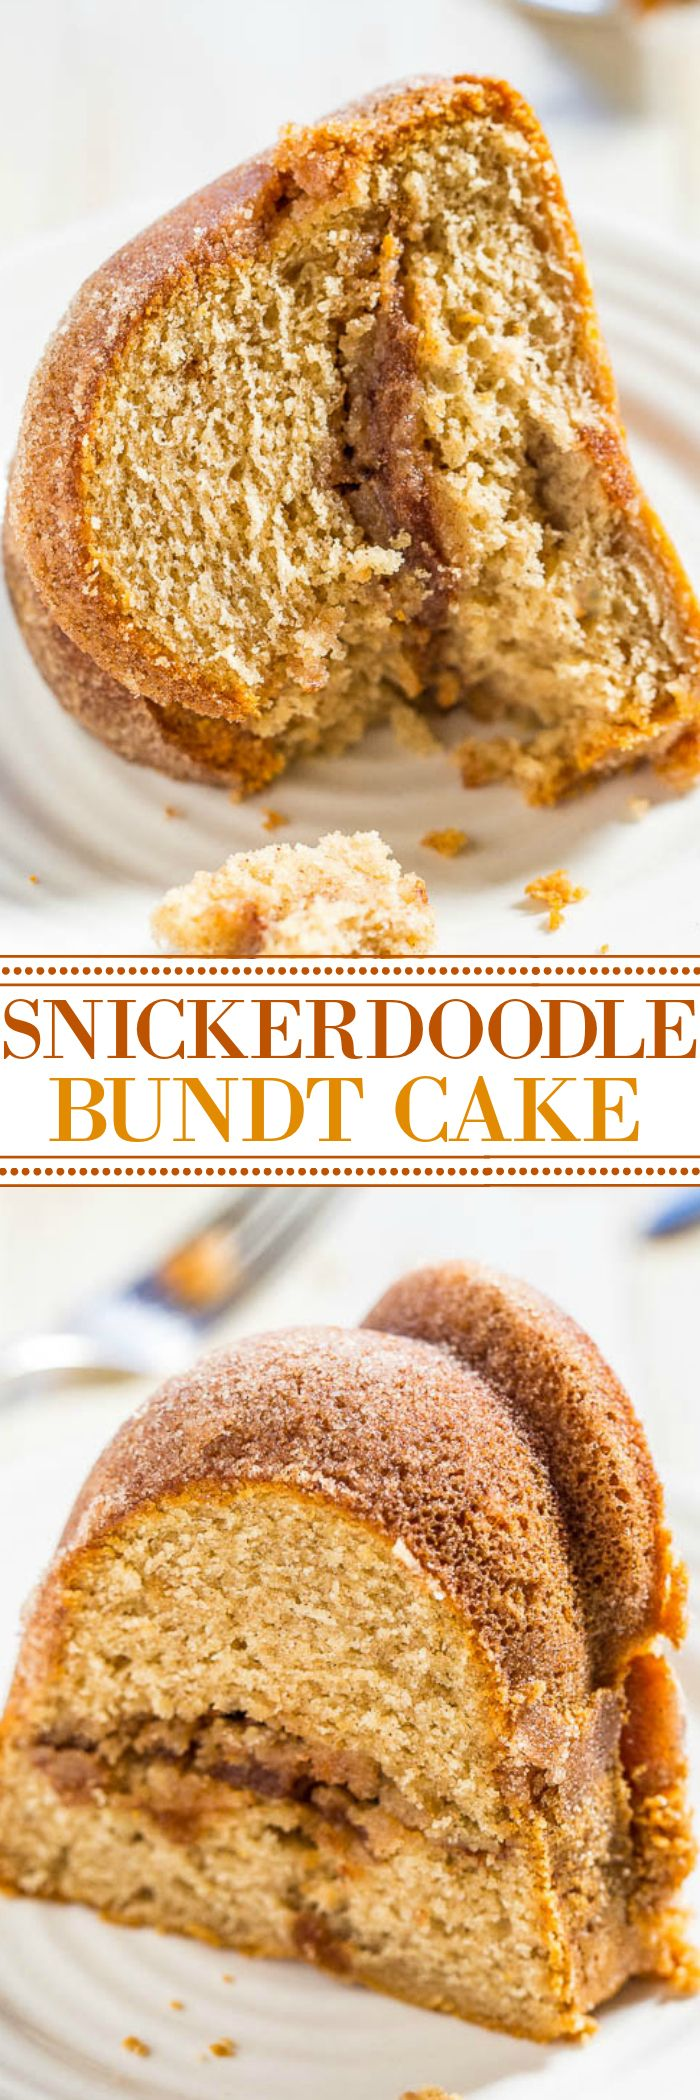 Snickerdoodle Bundt Cake - A cinnamon-sugar filling runs through the center of this soft, buttery cake that's also coated with cinnamon-sugar!! Everyone loves this easy cake that tastes like snickerdoodle cookies!!